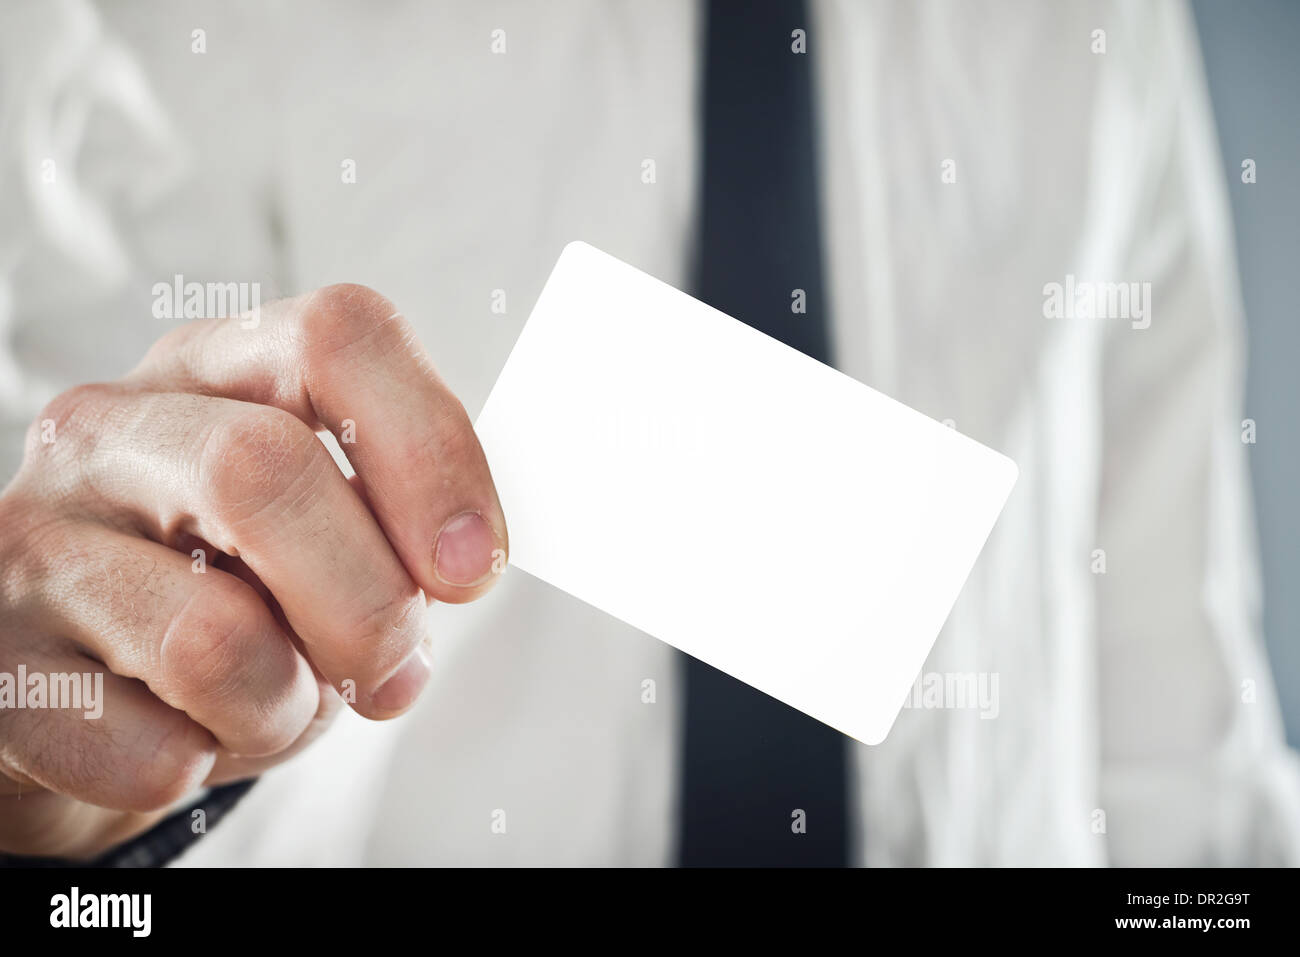 Blank Credit Card Stock Photos & Blank Credit Card Stock Images - Alamy